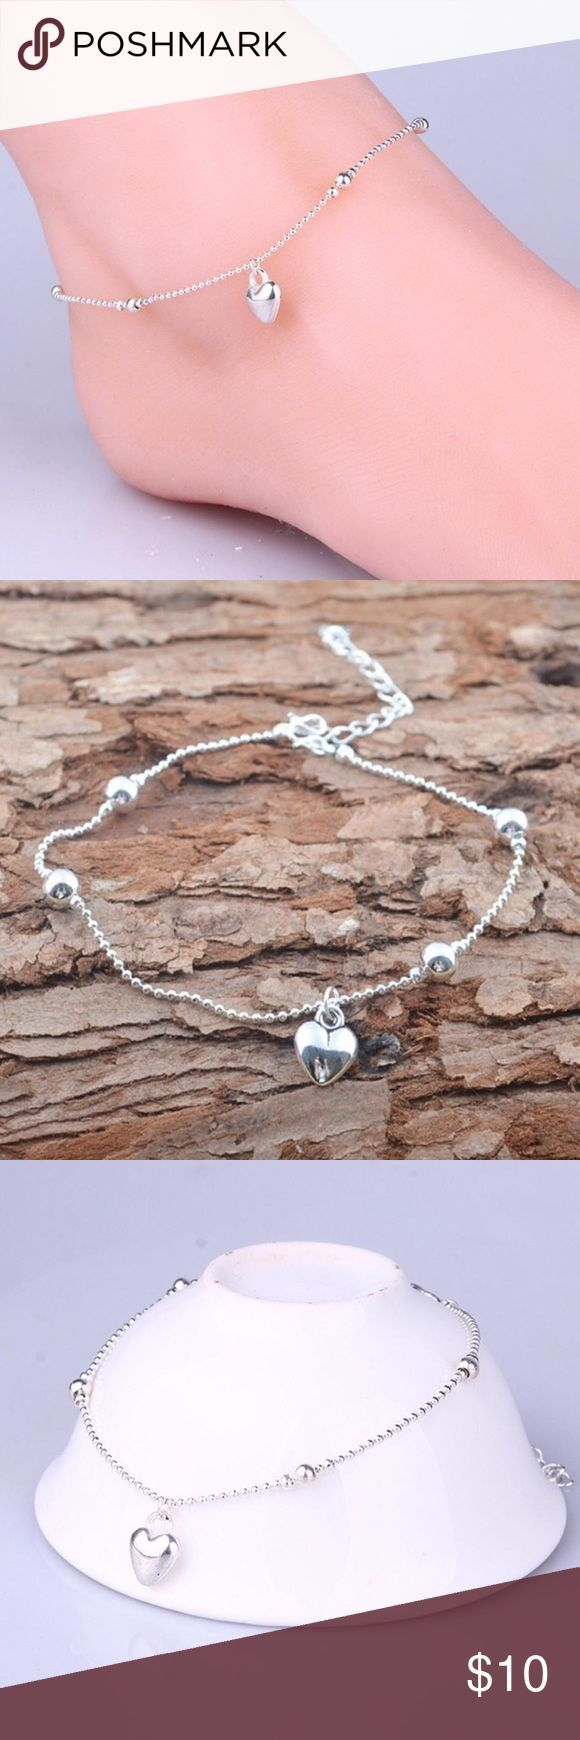 88931f93c2e218 Silver Dainty Heart Ankle Bracelet Silver Tone Dainty Heart Ankle Bracelet.  SAVE 10% when you Bundle 2 or more items & pay only ONE shipping fee!